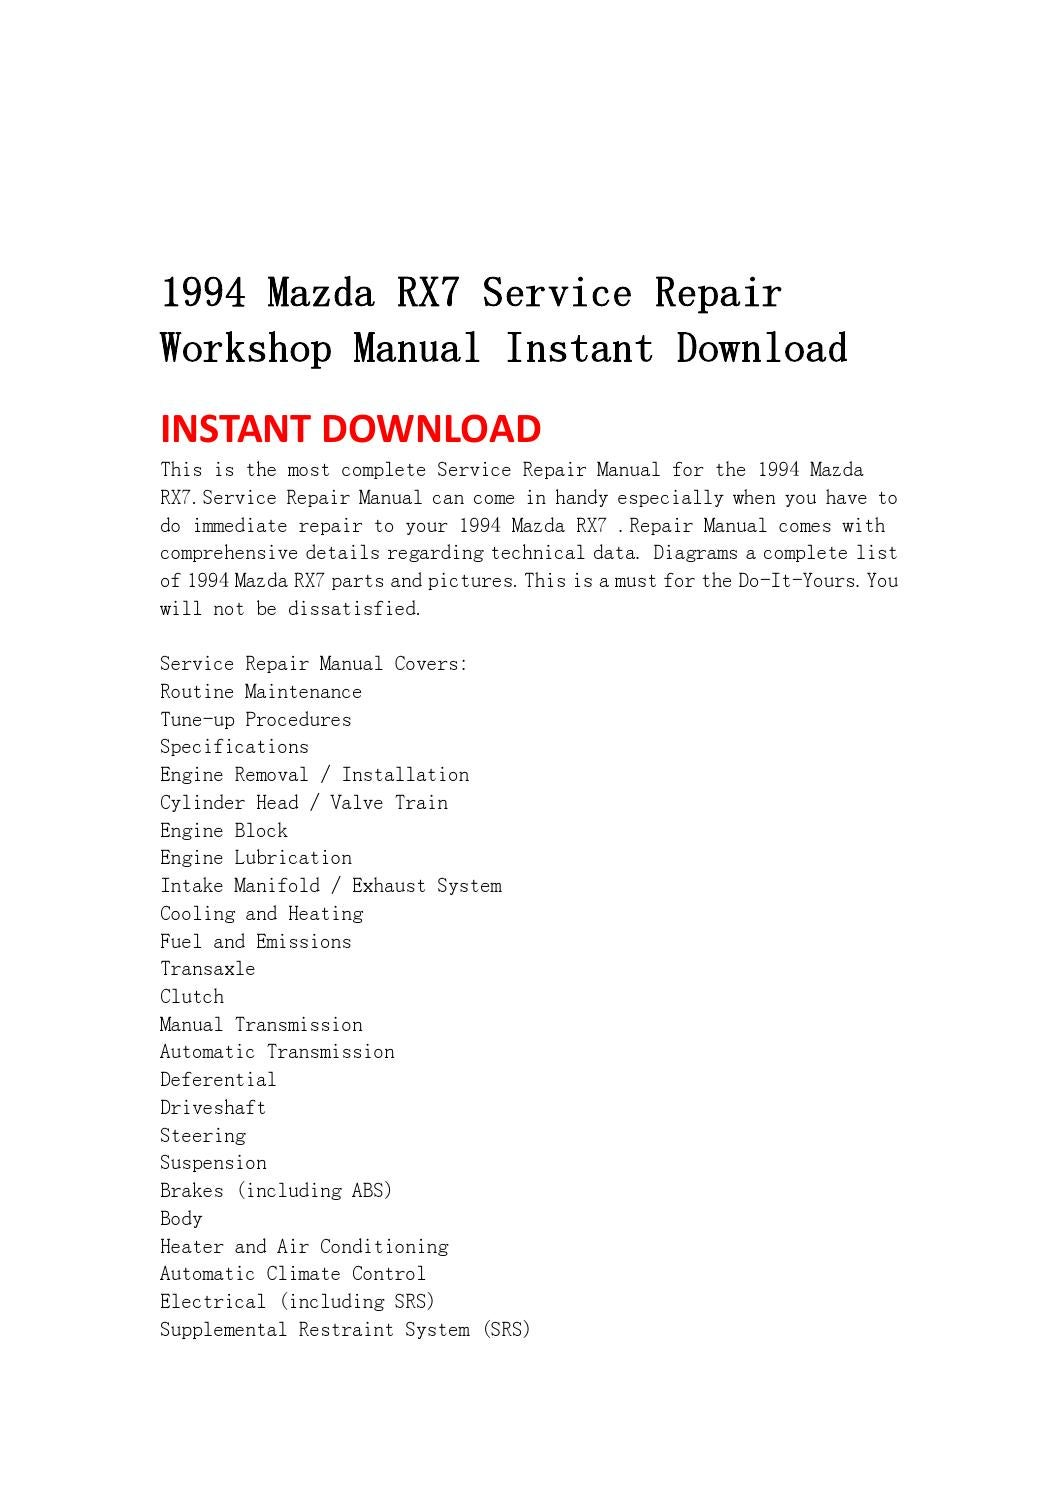 1994 Mazda Rx7 Service Repair Workshop Manual Instant Download By Shefjnsehf76